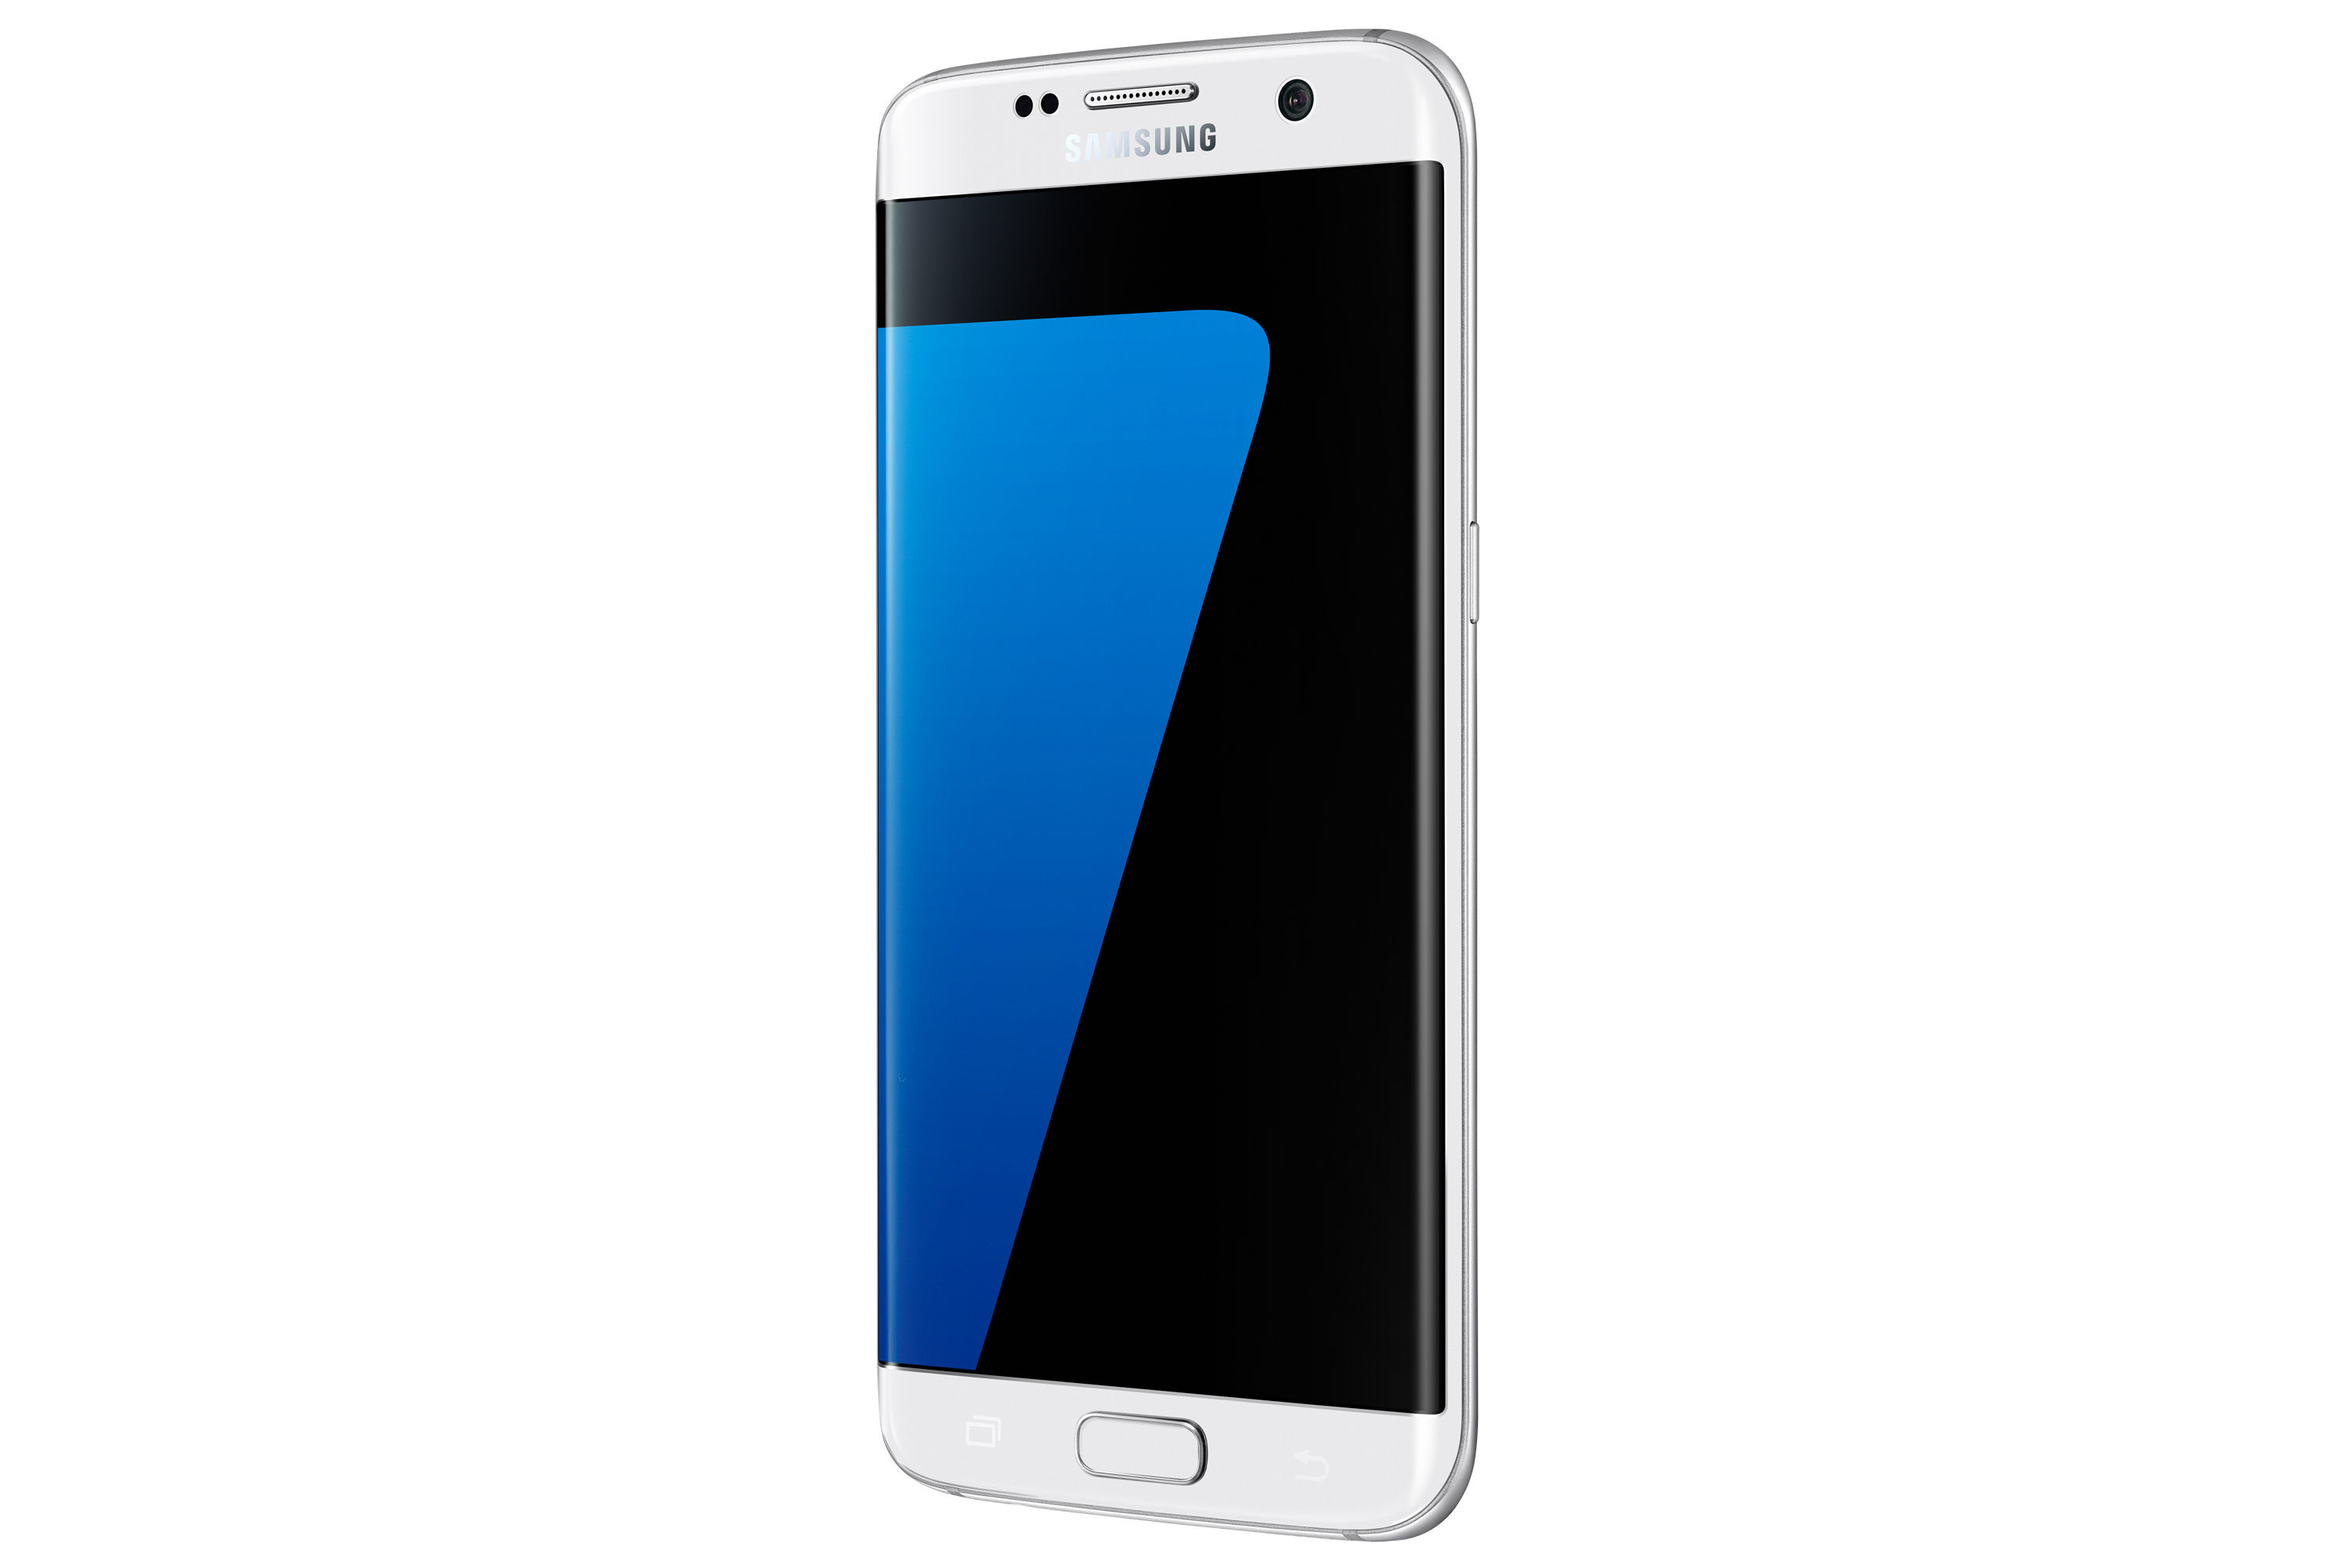 samsung galaxy s7 and galaxy s7 edge image gallery goandroid. Black Bedroom Furniture Sets. Home Design Ideas